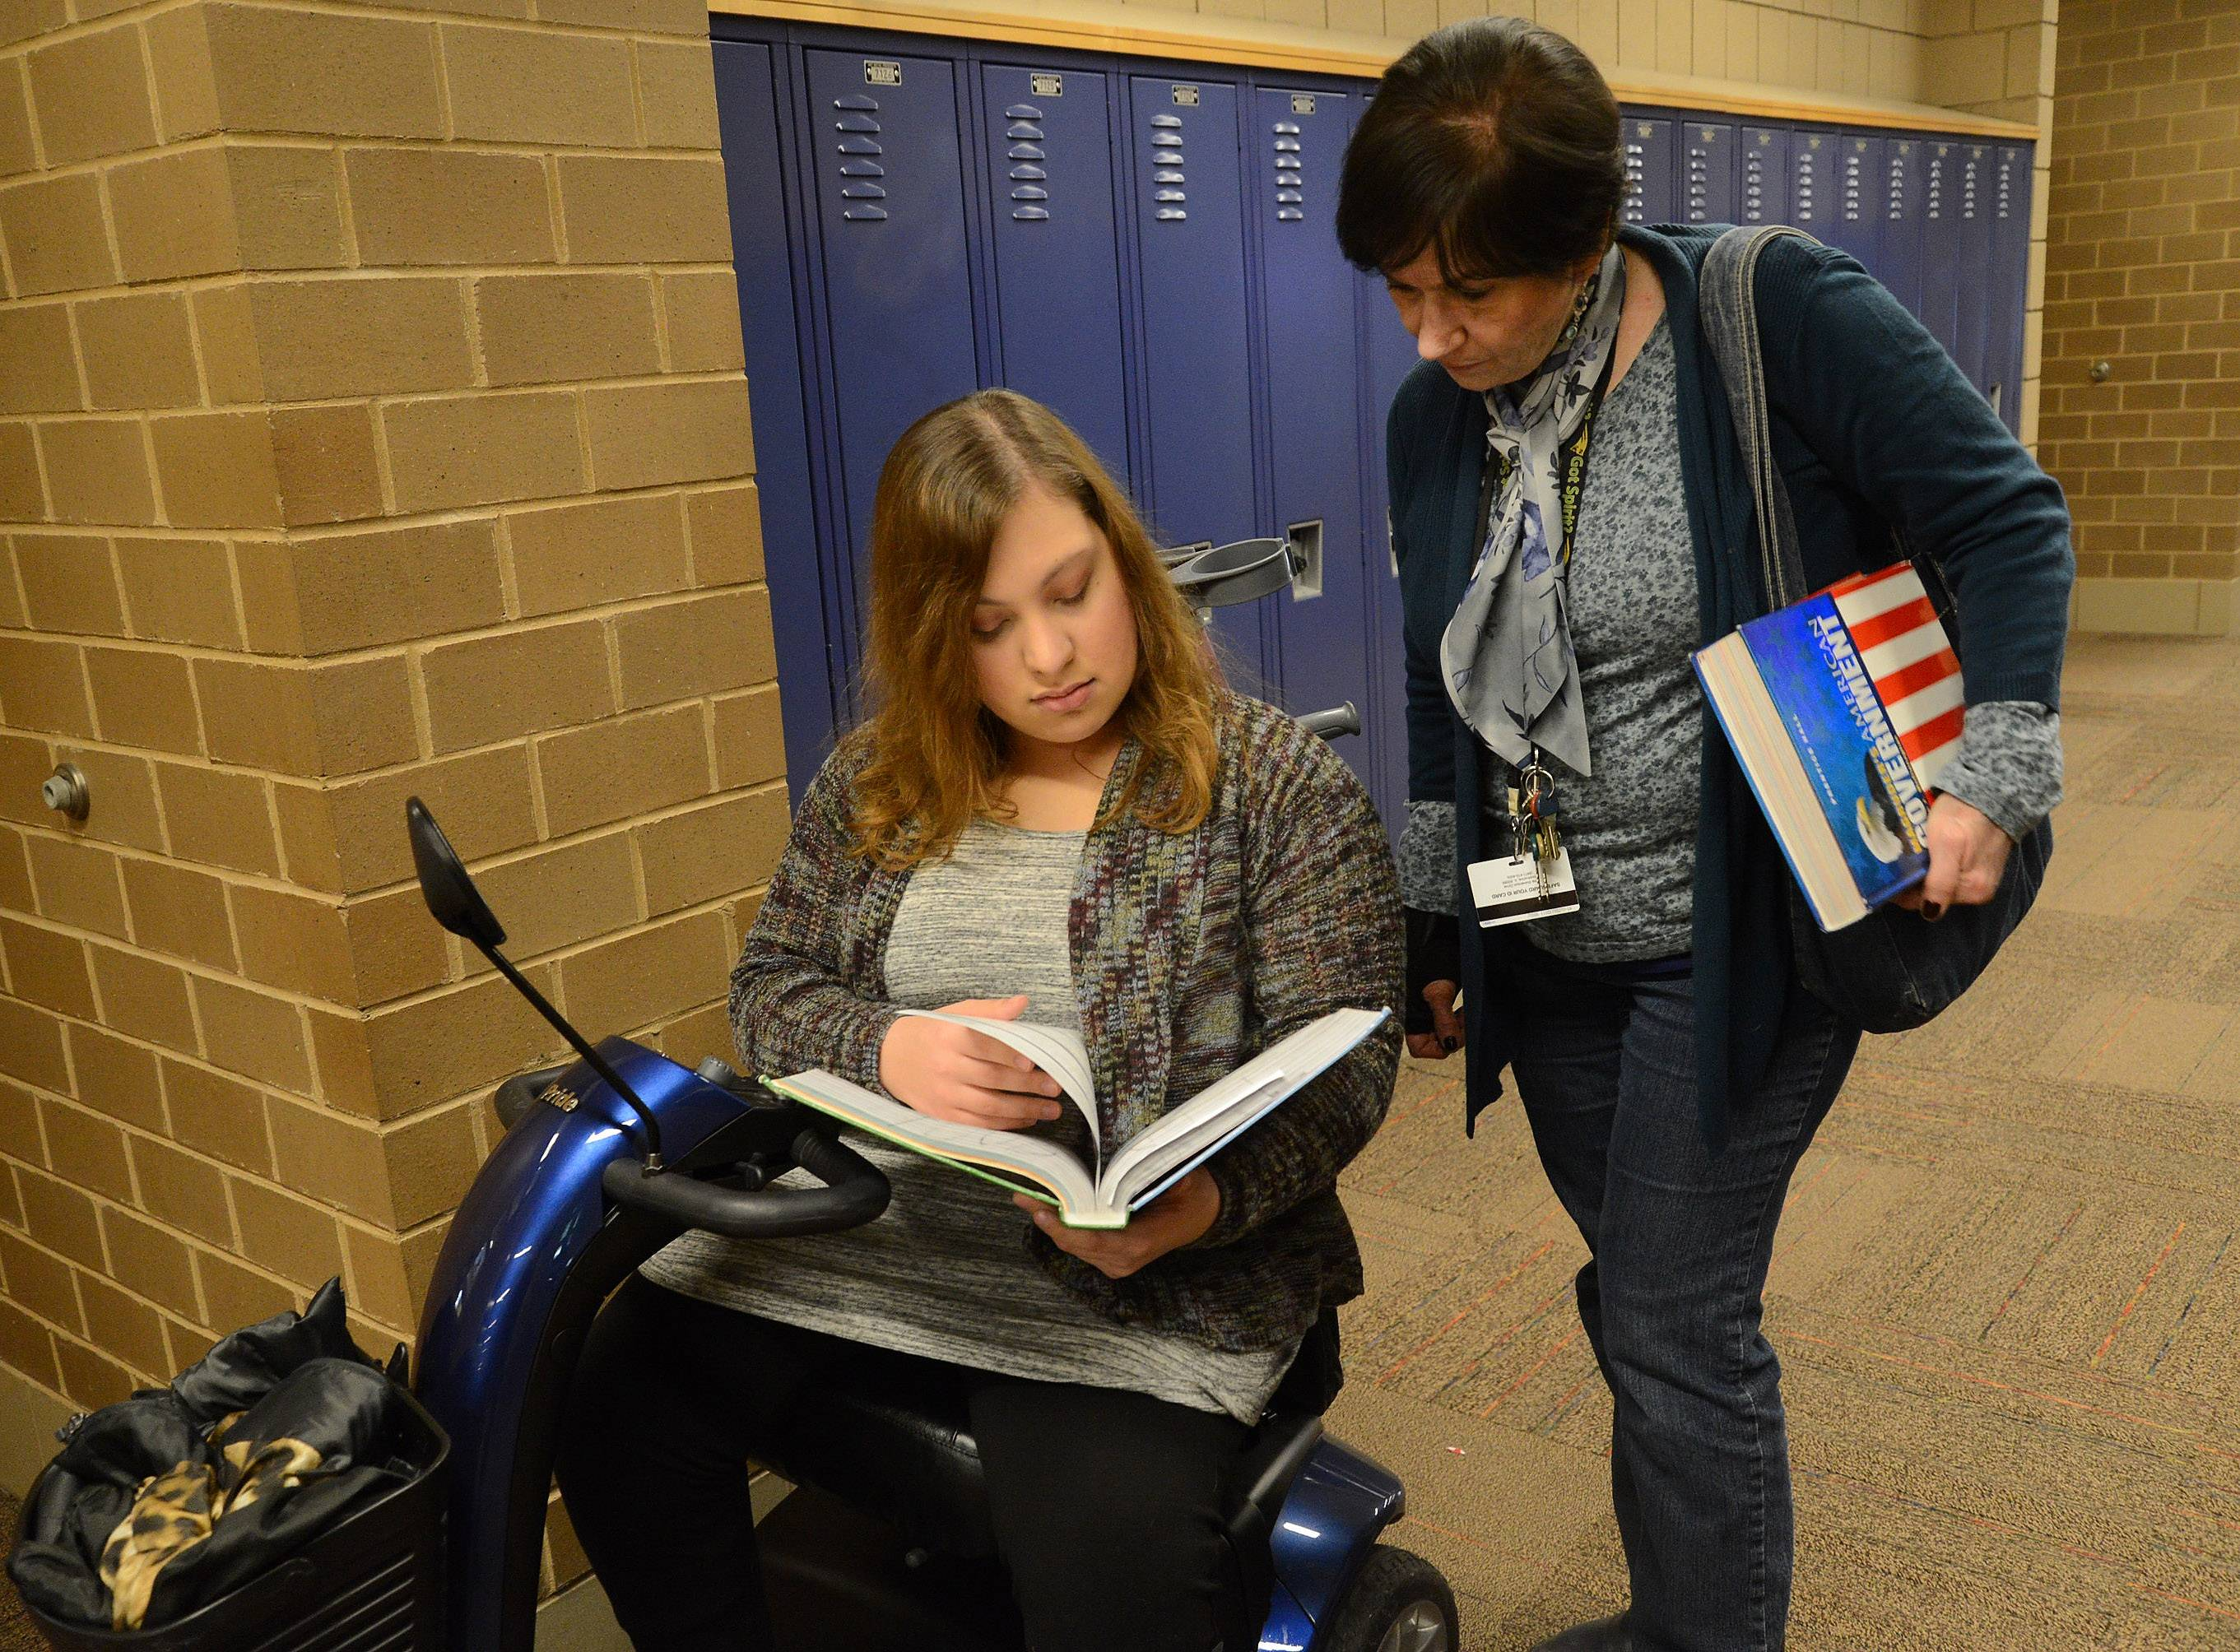 Stevenson High School student Gina Baran works with aide Inga Buttelmann. As a student with special education needs, Baran has an individualized education plan.